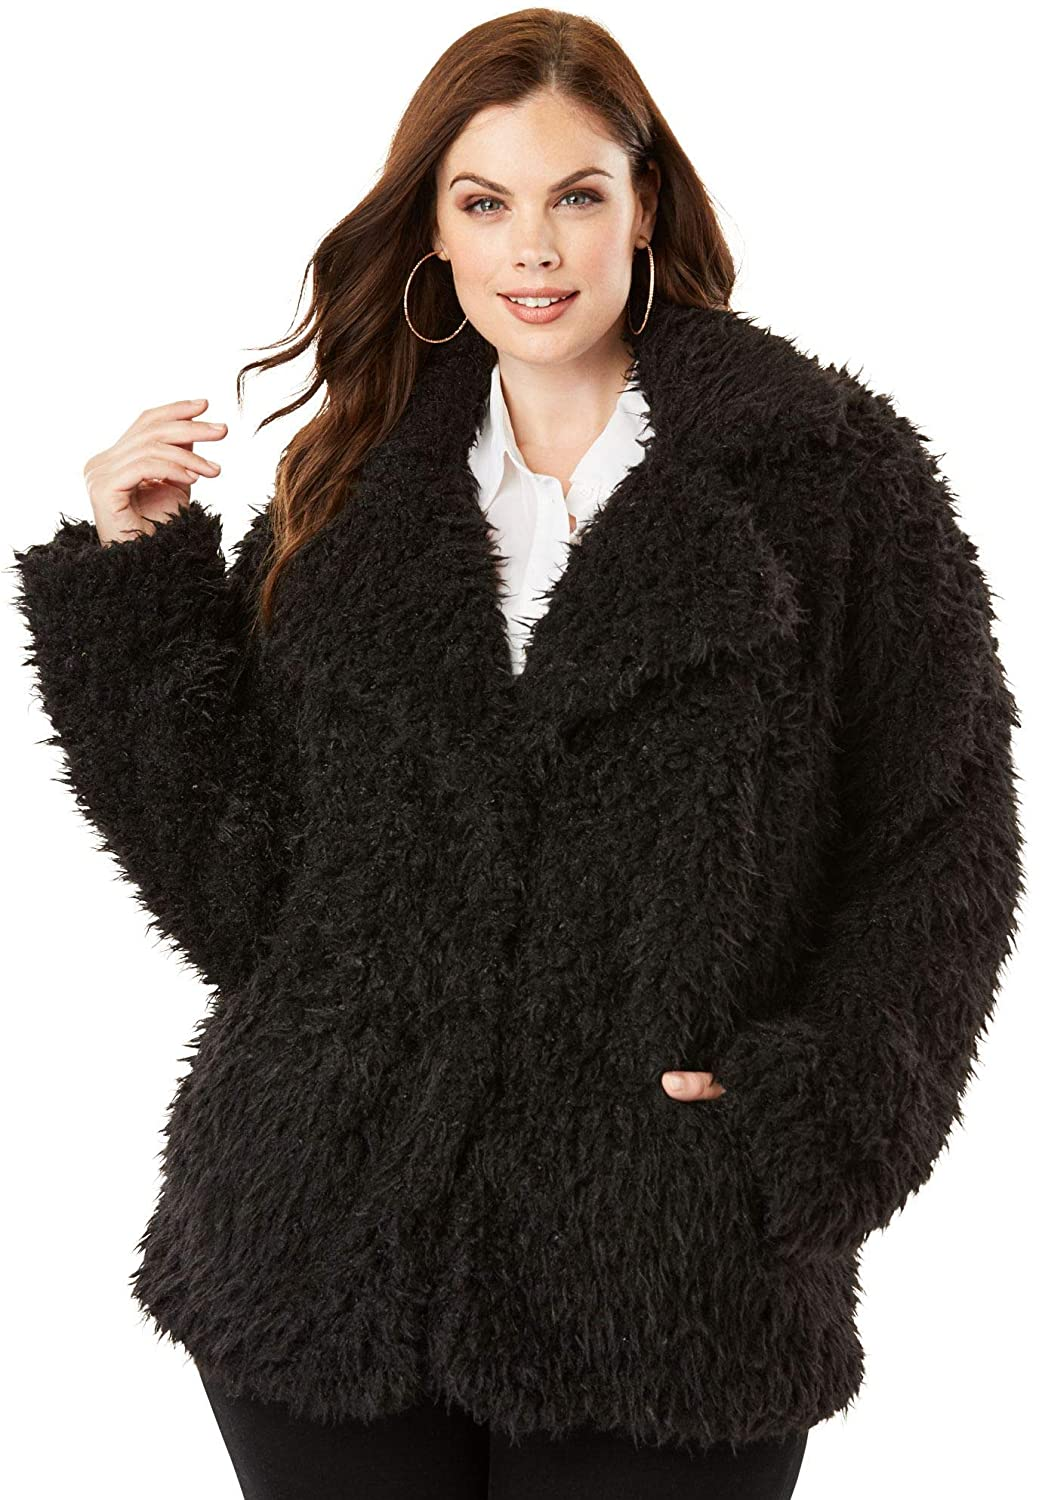 d4eaea1925 Roamans Women s Plus Size Teddy Fleece Coat at Amazon Women s Coats Shop